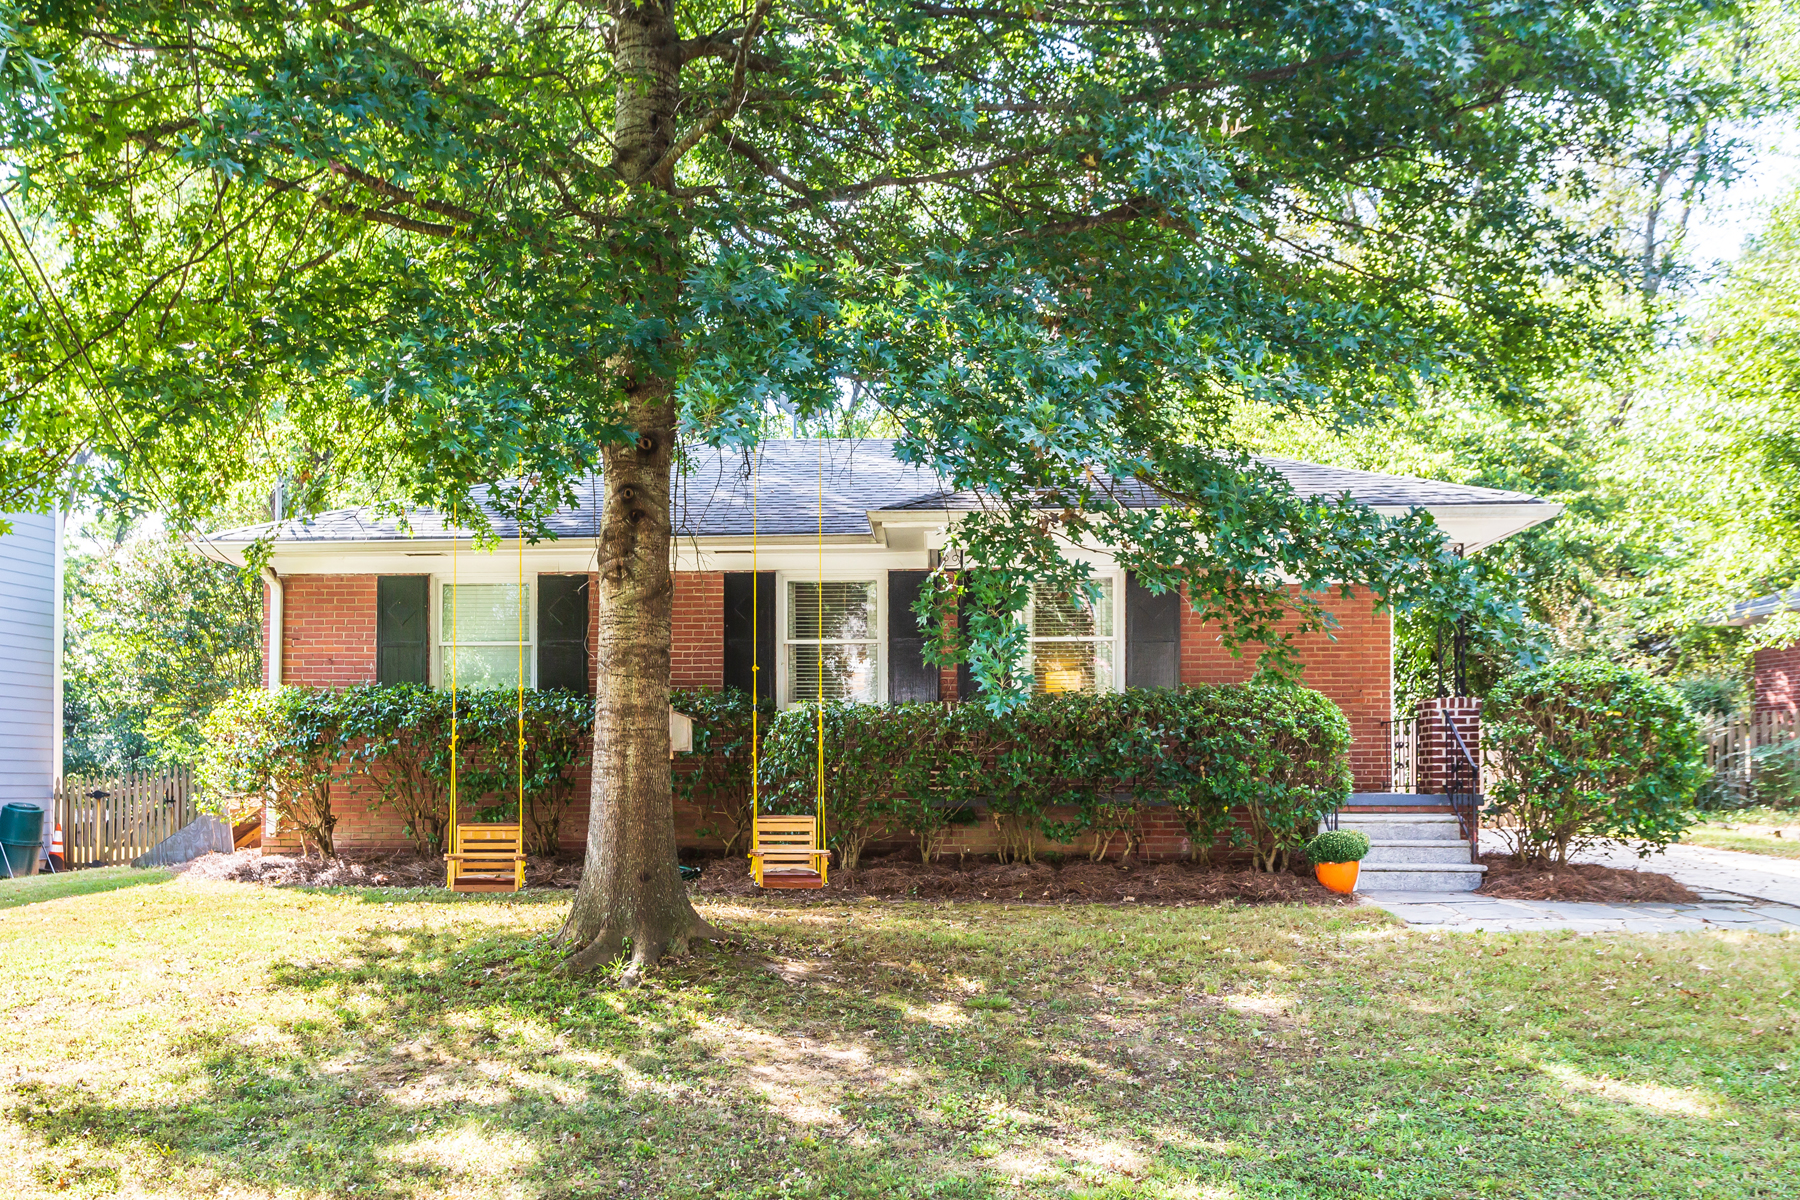 Single Family Home for Sale at Attractive Brookhaven Bungalow 1591 Fearn Circle NE Brookhaven, Georgia 30319 United States